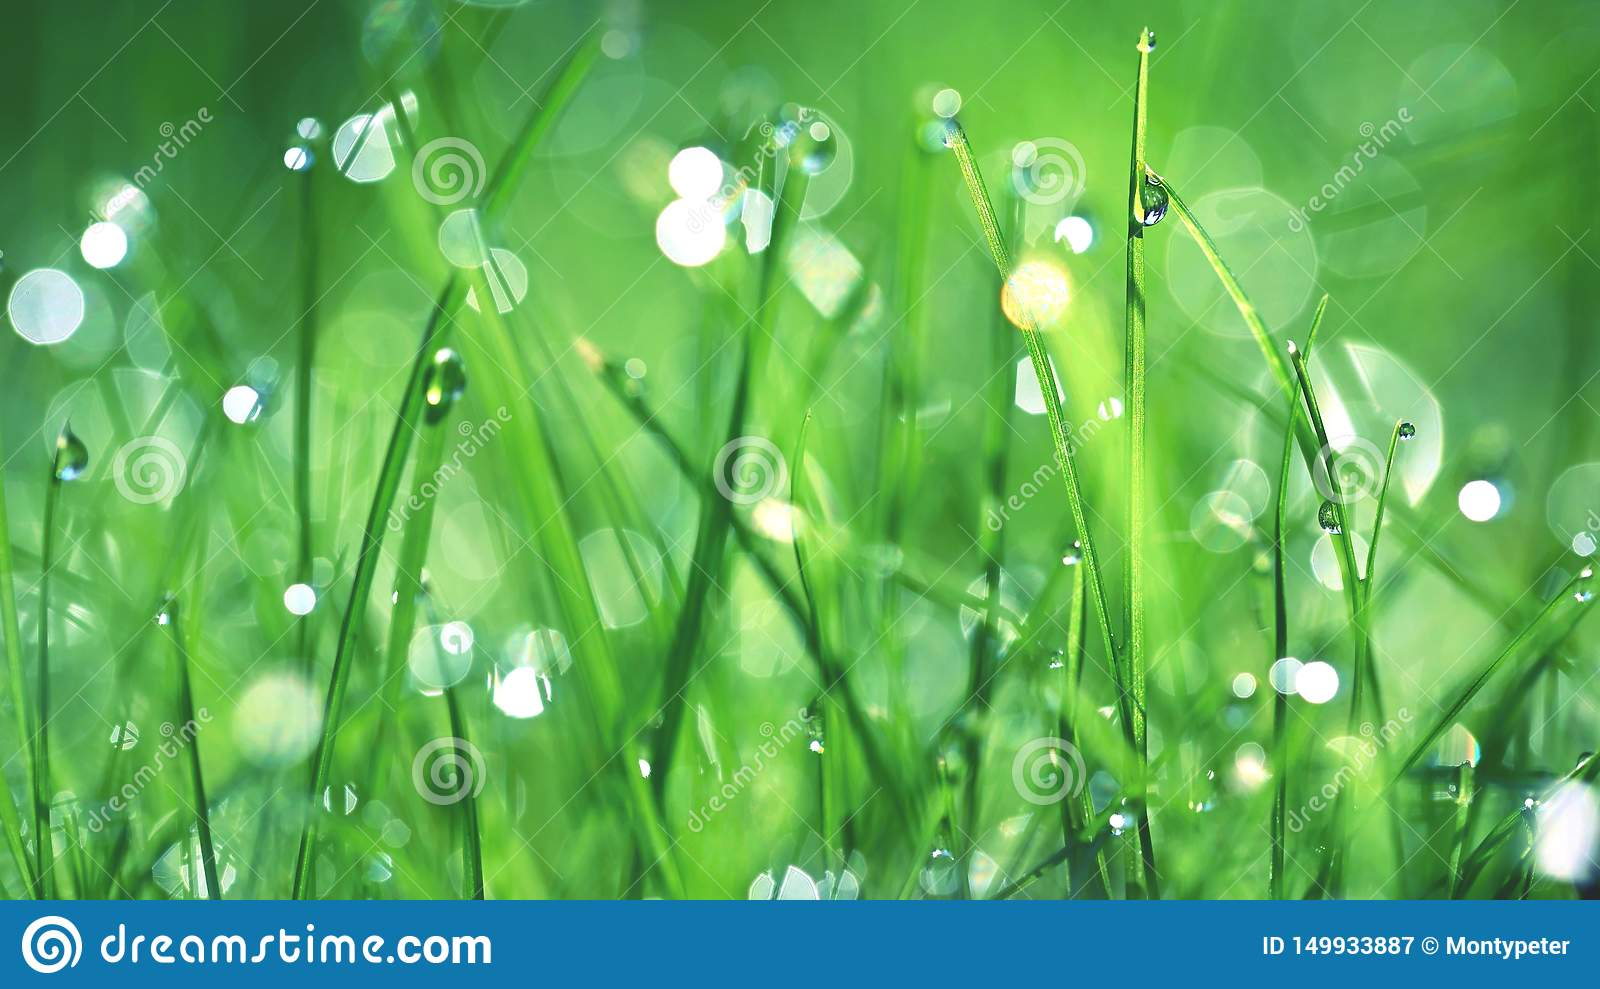 Green Nature Beautiful Close Up Photo Of Nature Green Grass With